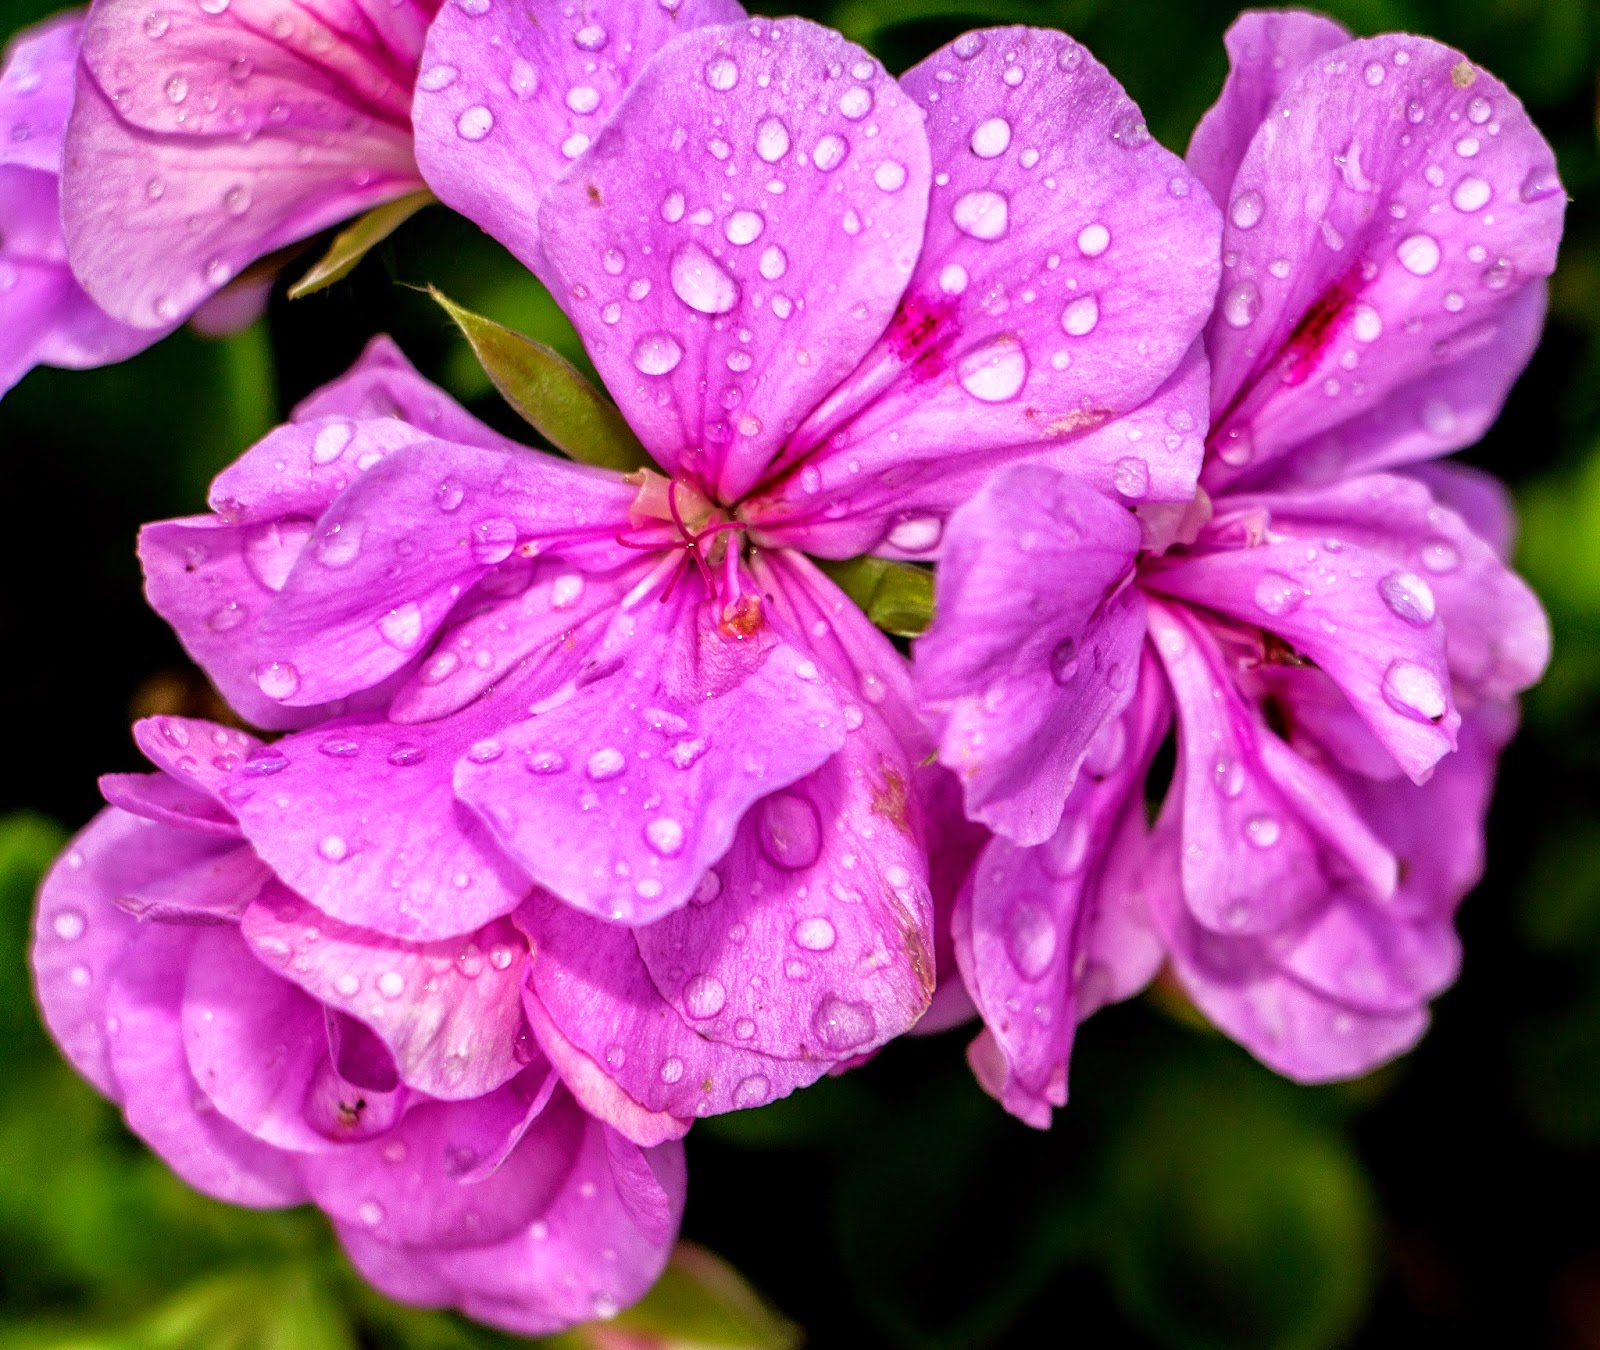 Flowers In The Rain Durbanville, Cape Town - Canon EOS 700D / EF-S 18-135mm IS STM Lens